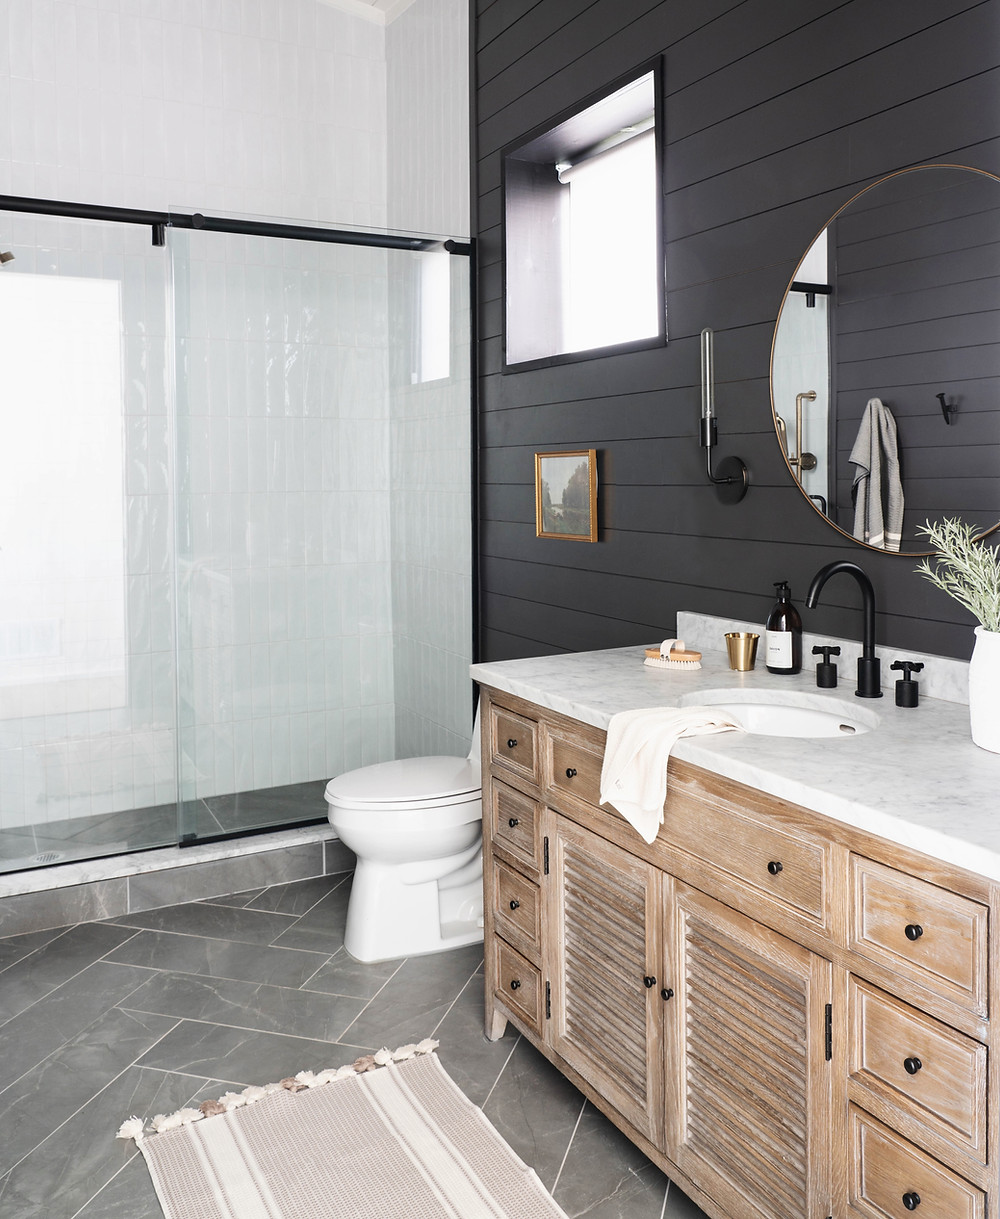 Moody dark shiplap walls and white clean tile contrast one another in this bathroom design by Leclair Decor